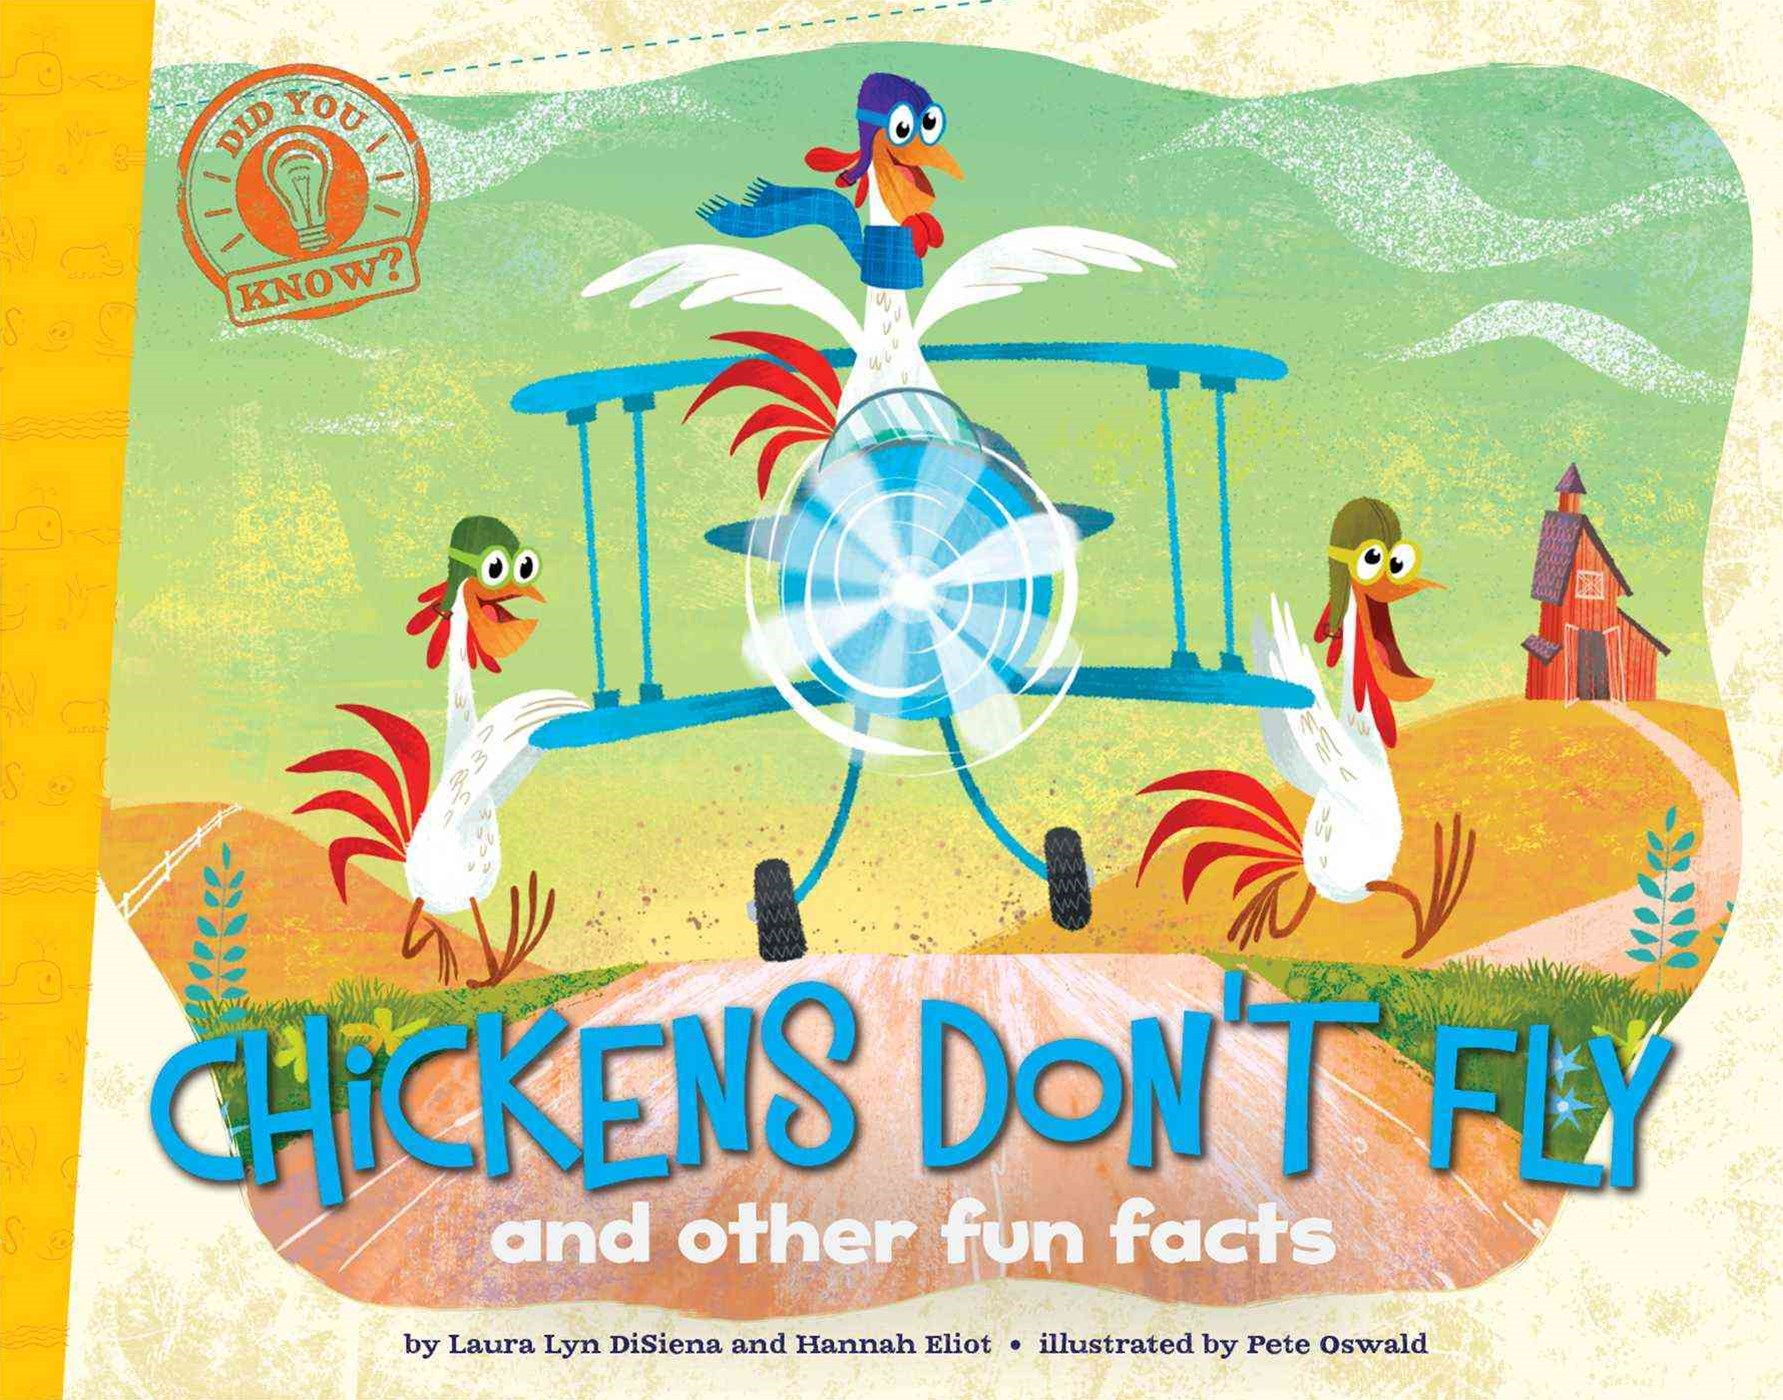 Did You Know: Chickens Don't Fly: and other fun facts